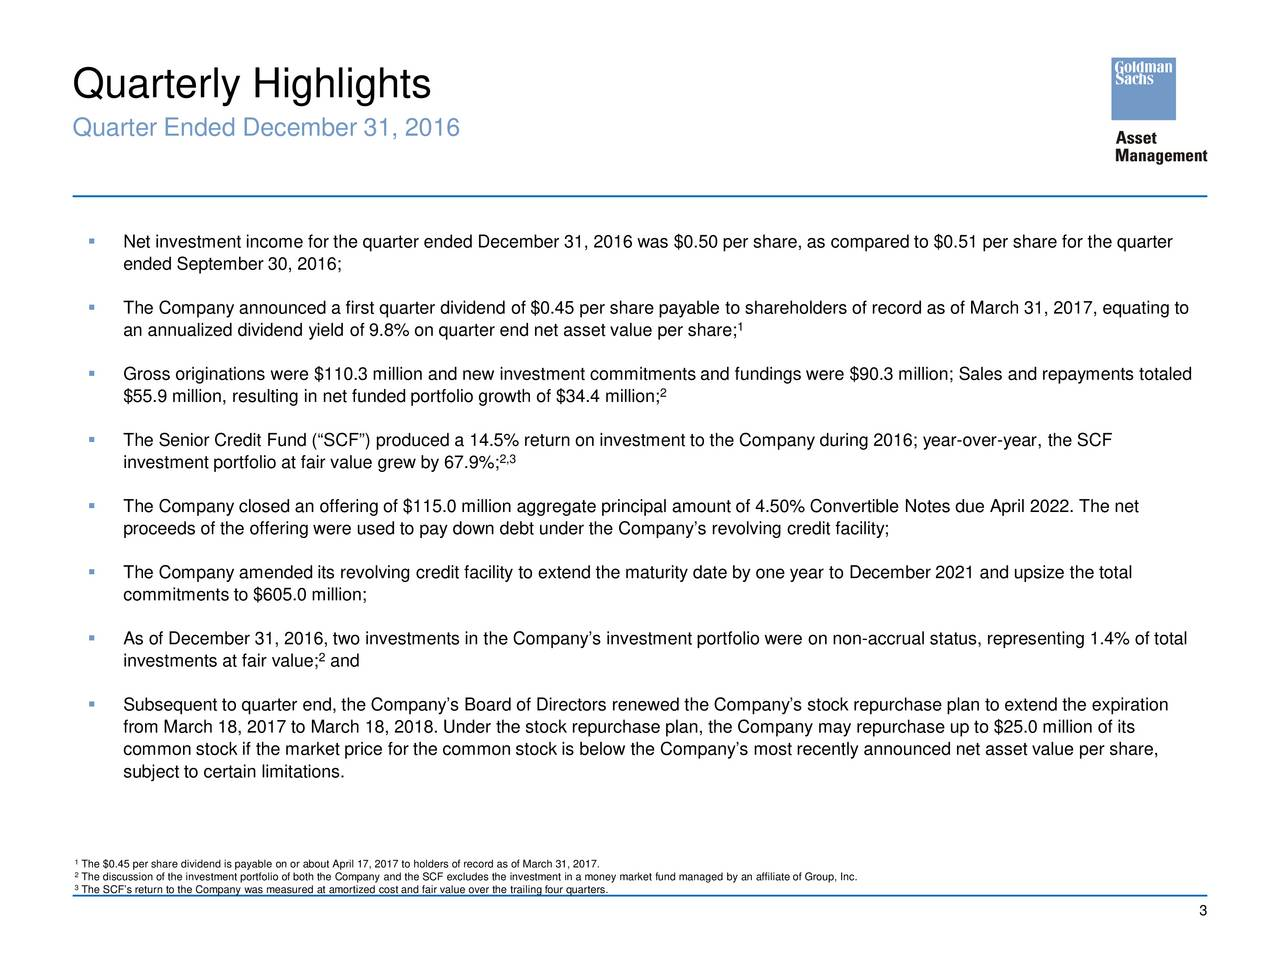 Quarter Ended December 31, 2016 Net investment income for the quarter ended December 31, 2016 was $0.50 per share, as compared to $0.51 per share for the quarter ended September 30, 2016; The Company announced a first quarterdividend of $0.45 per share payable to shareholders of record as of March 31, 2017, equating to an annualized dividend yield of 9.8% on quarter end net asset value per share; 1 Gross originations were $110.3 million and new investment commitments and fundings were $90.3 million; Sales and repayments totaled $55.9 million, resulting in net funded portfolio growth of $34.4million; 2 The Senior Credit Fund (SCF) produced a 14.5% return on investment to the Company during 2016;year-over-year, the SCF 2,3 investment portfolio at fair value grew by 67.9%; The Company closed an offering of $115.0 million aggregate principal amount of 4.50% Convertible Notes due April 2022. The net proceeds of the offering were used to pay down debt under the Companys revolving credit facility; The Company amended its revolving credit facility to extend the maturity date by one year toDecember 2021 and upsize the total commitments to $605.0 million; As of December 31, 2016, two investments in the Companys investment portfolio wereon non-accrual status, representing 1.4% of total 2 investments at fair value; and Subsequent to quarter end, the Companys Board of Directors renewed the Companys stock repurchase plan to extend the expiraiton from March 18, 2017 to March 18, 2018. Under the stock repurchase plan, the Company may repurchase up to $25.0 million of its common stock if the market price for the common stock is below the Companys most recently announced net asset value per share, subject to certain limitations. 1The $0.45 per share dividend is payable on or about April 17, 2017 to holders of record as of March 31, 2017. 3The discussion of the investment portfolio of both the Company and the SCF excludes the investment in a money market fund managed by an affiliate o